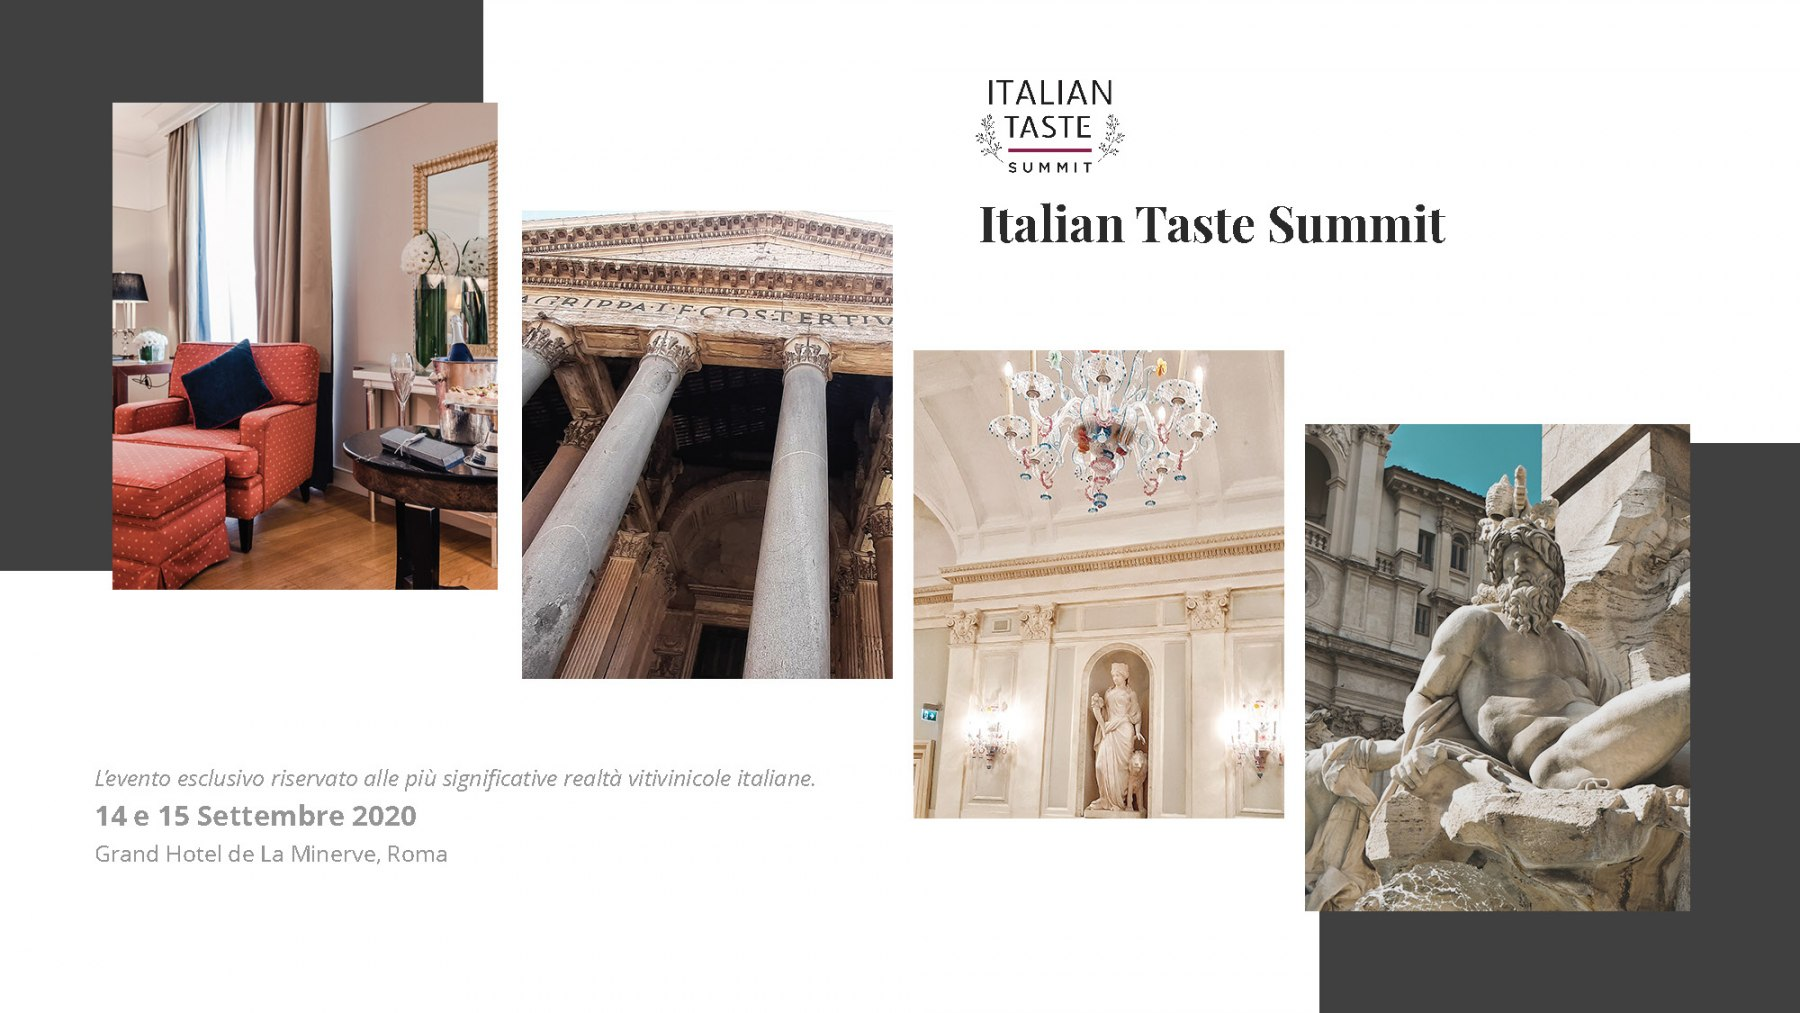 Italian-Taste-Summit-IT-2020_11